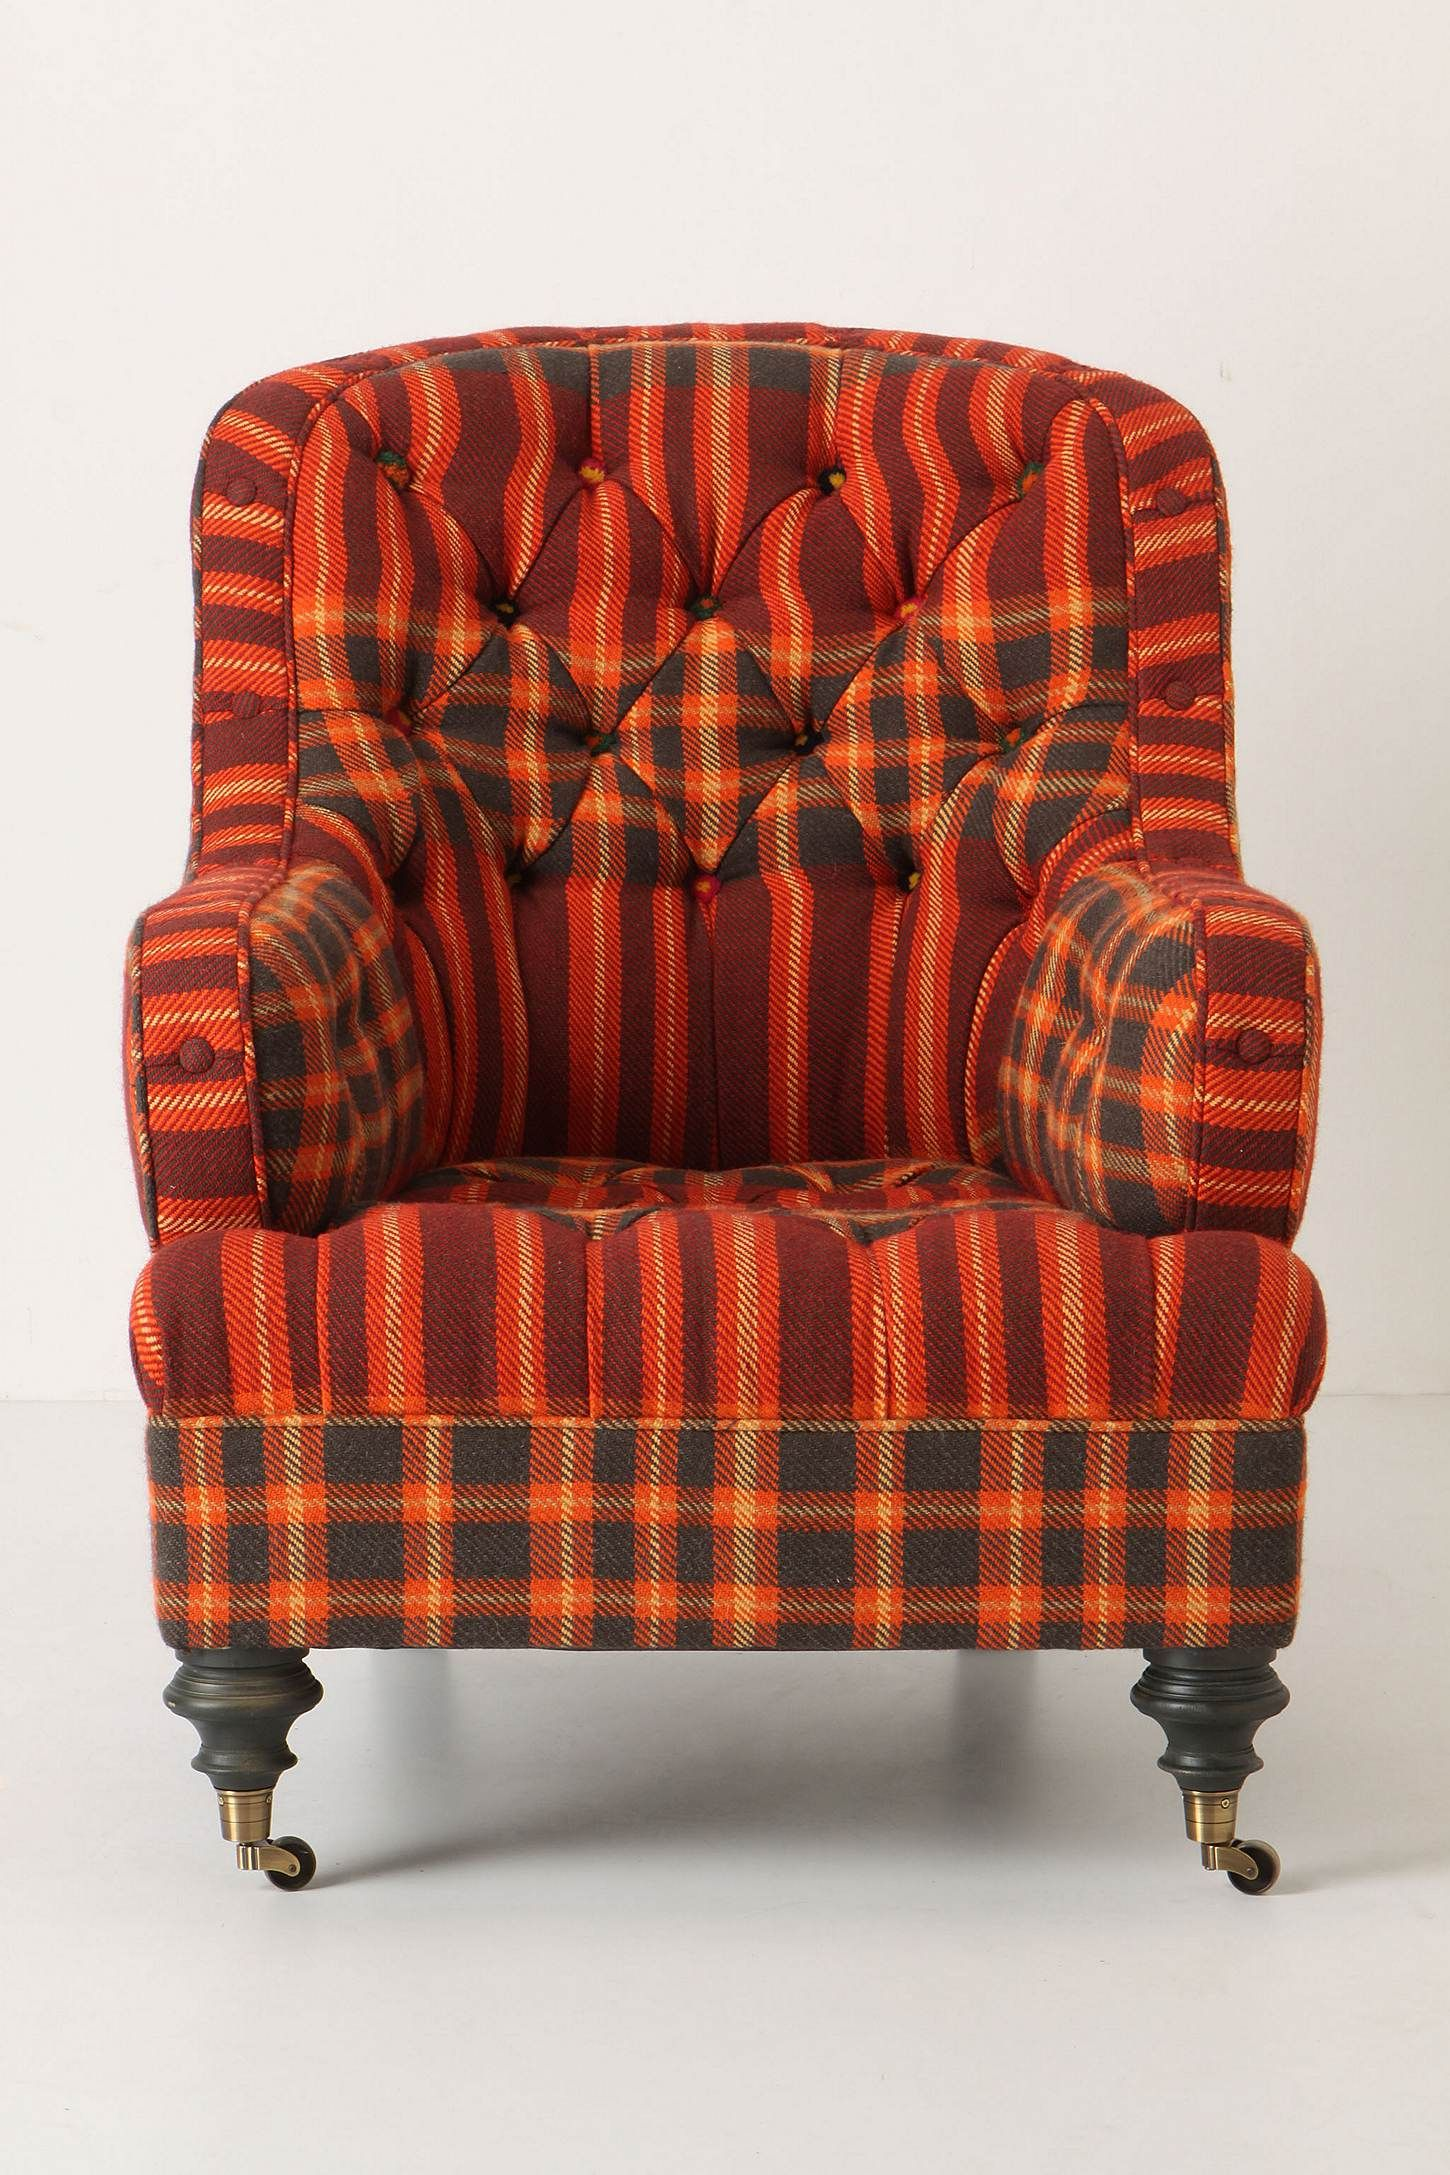 Big Comfortable Chairs Mad For Plaid Ya 39ll And Big Comfy Chairs Have A Seat